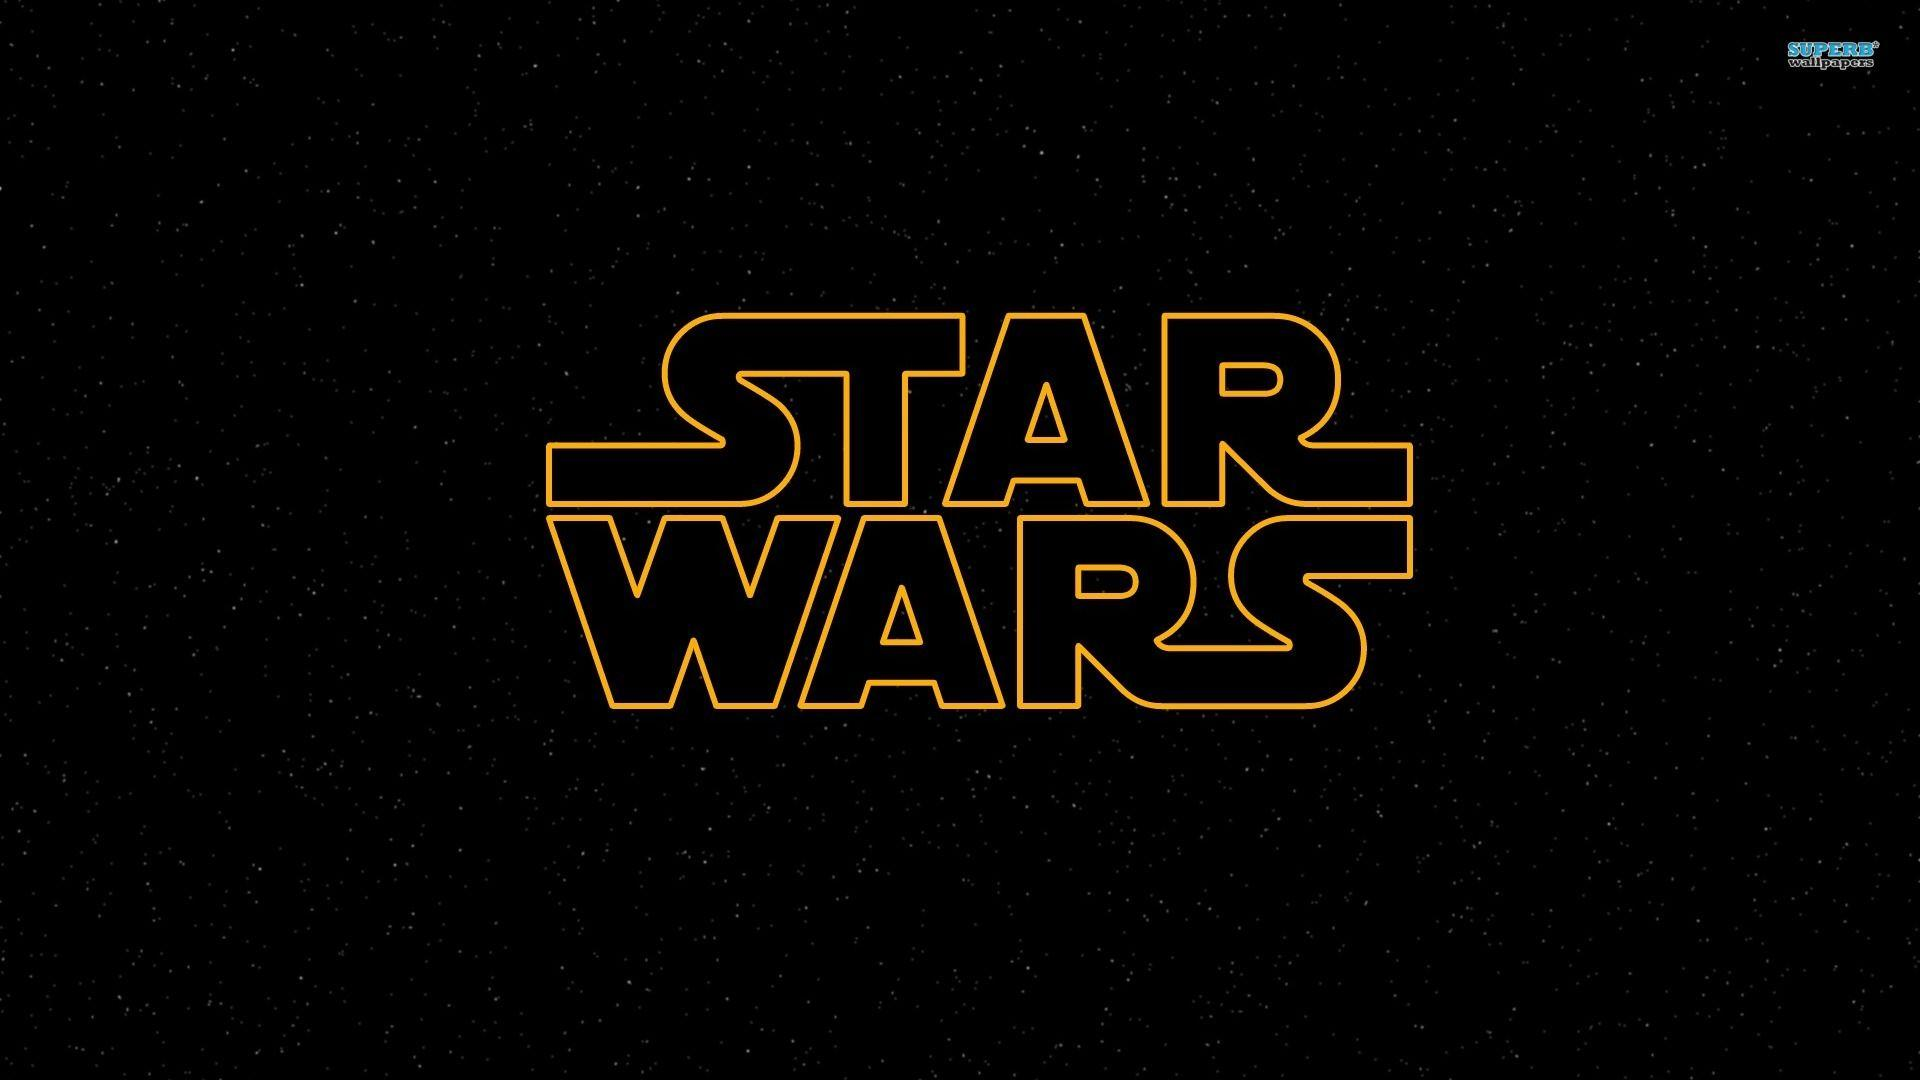 Star Wars Wallpapers 1920x1080 1920x1080